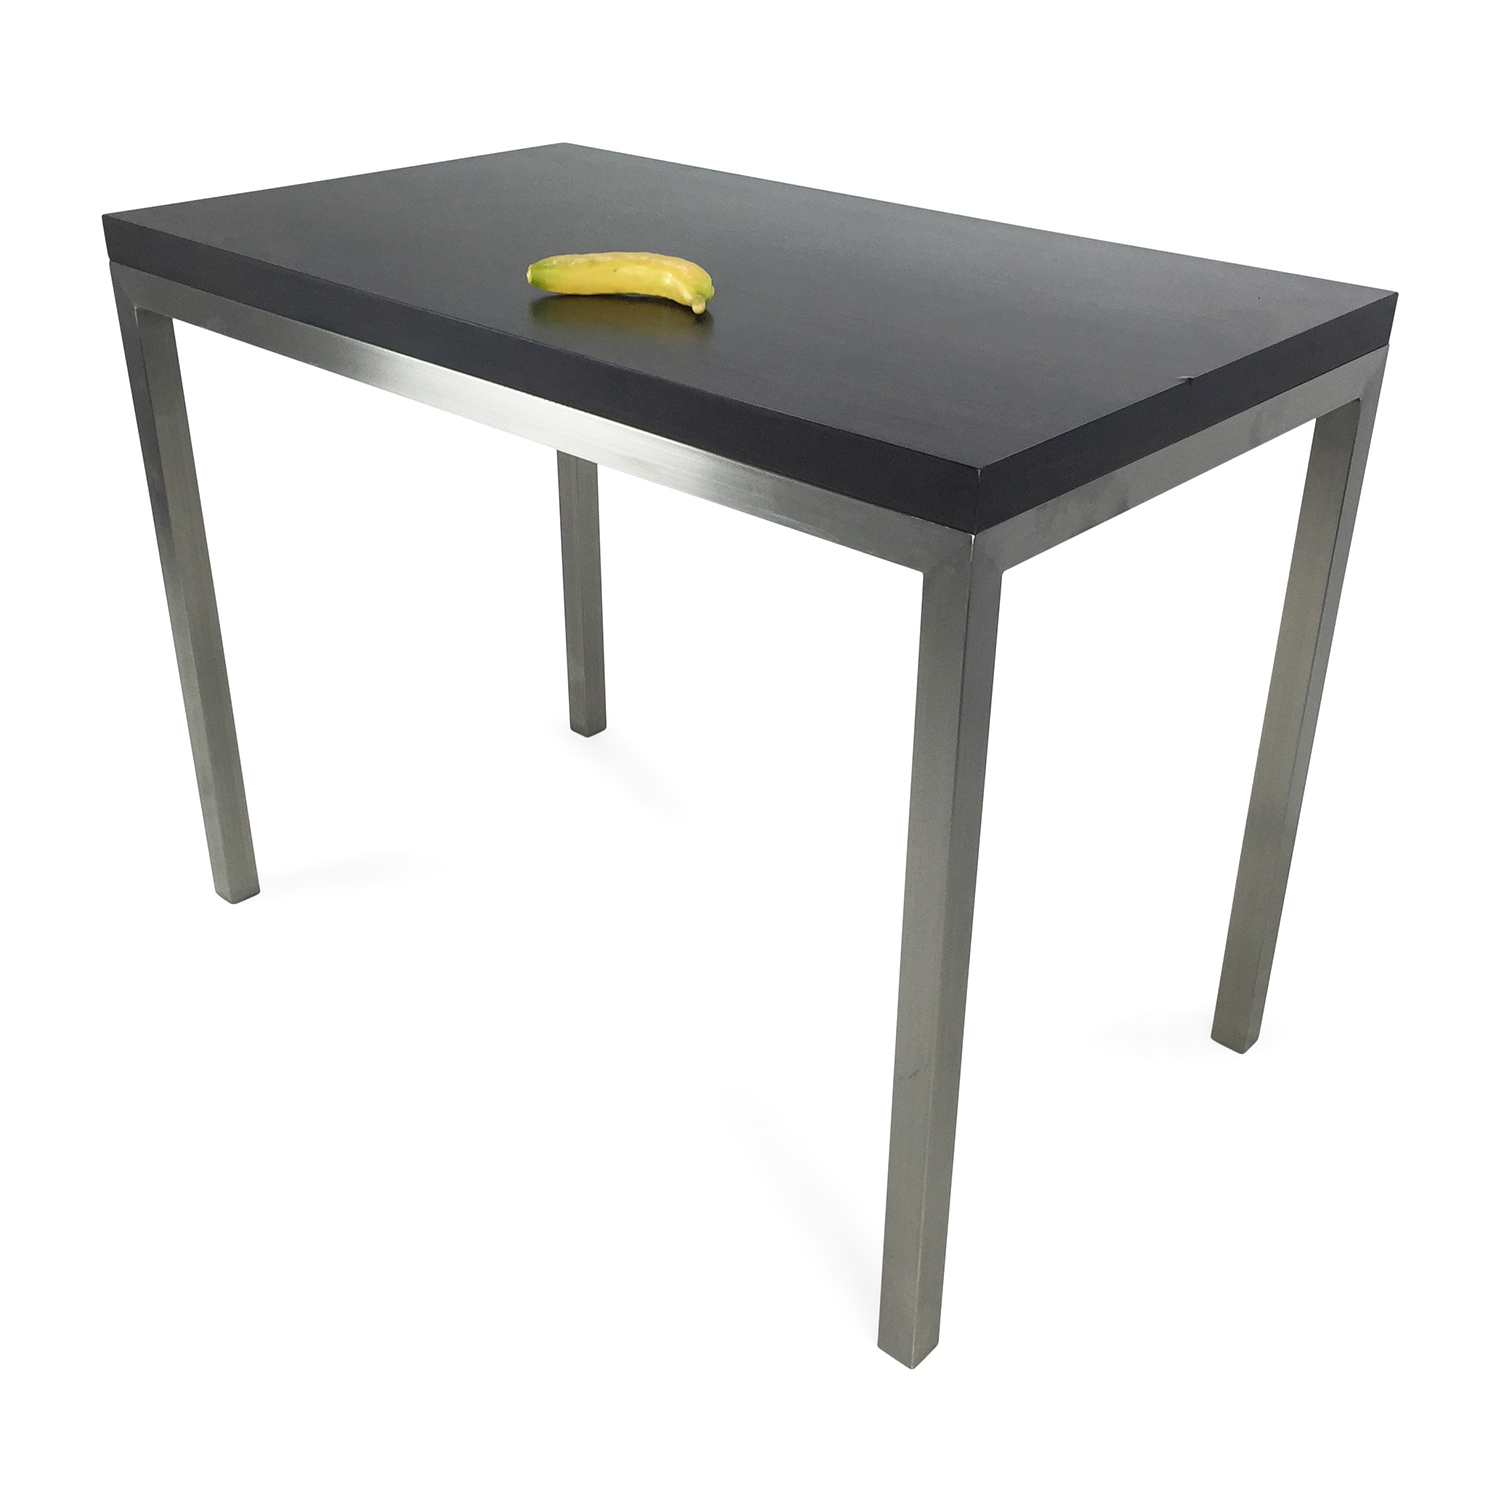 Flat Black And Cobre Coffee Tables Within Most Up To Date Crate And Barrel Bistro Table Crate And Barrel Bistro Table (View 11 of 20)